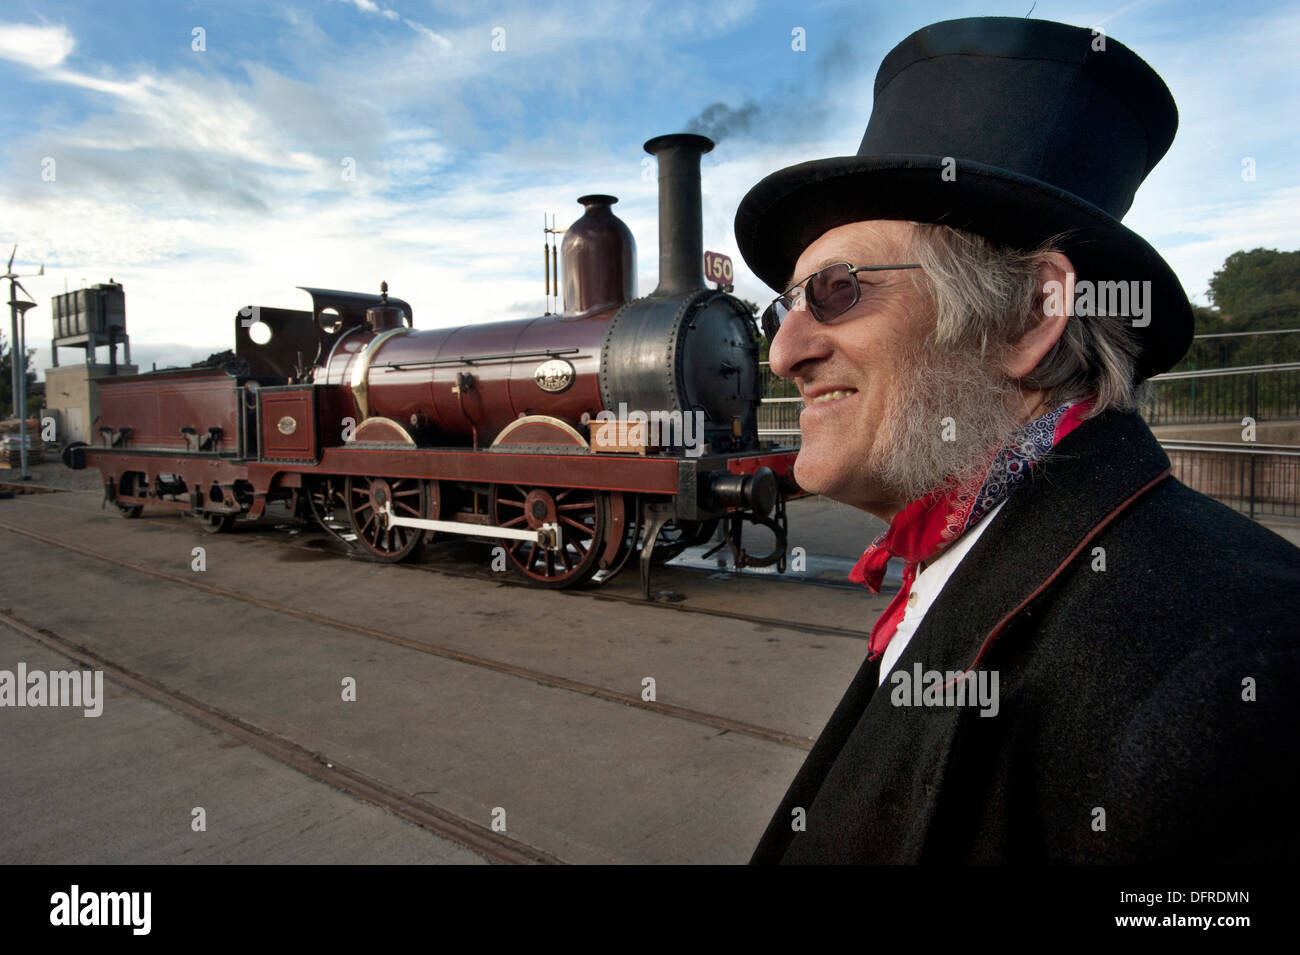 A Period dressed driver Alan Middleton wearing a Top Hat by his steam locomotive Furness Railway number 20, Britains oldest working standard gauge steam locomotive, at the National Railway Museums Shildon museum - Stock Image